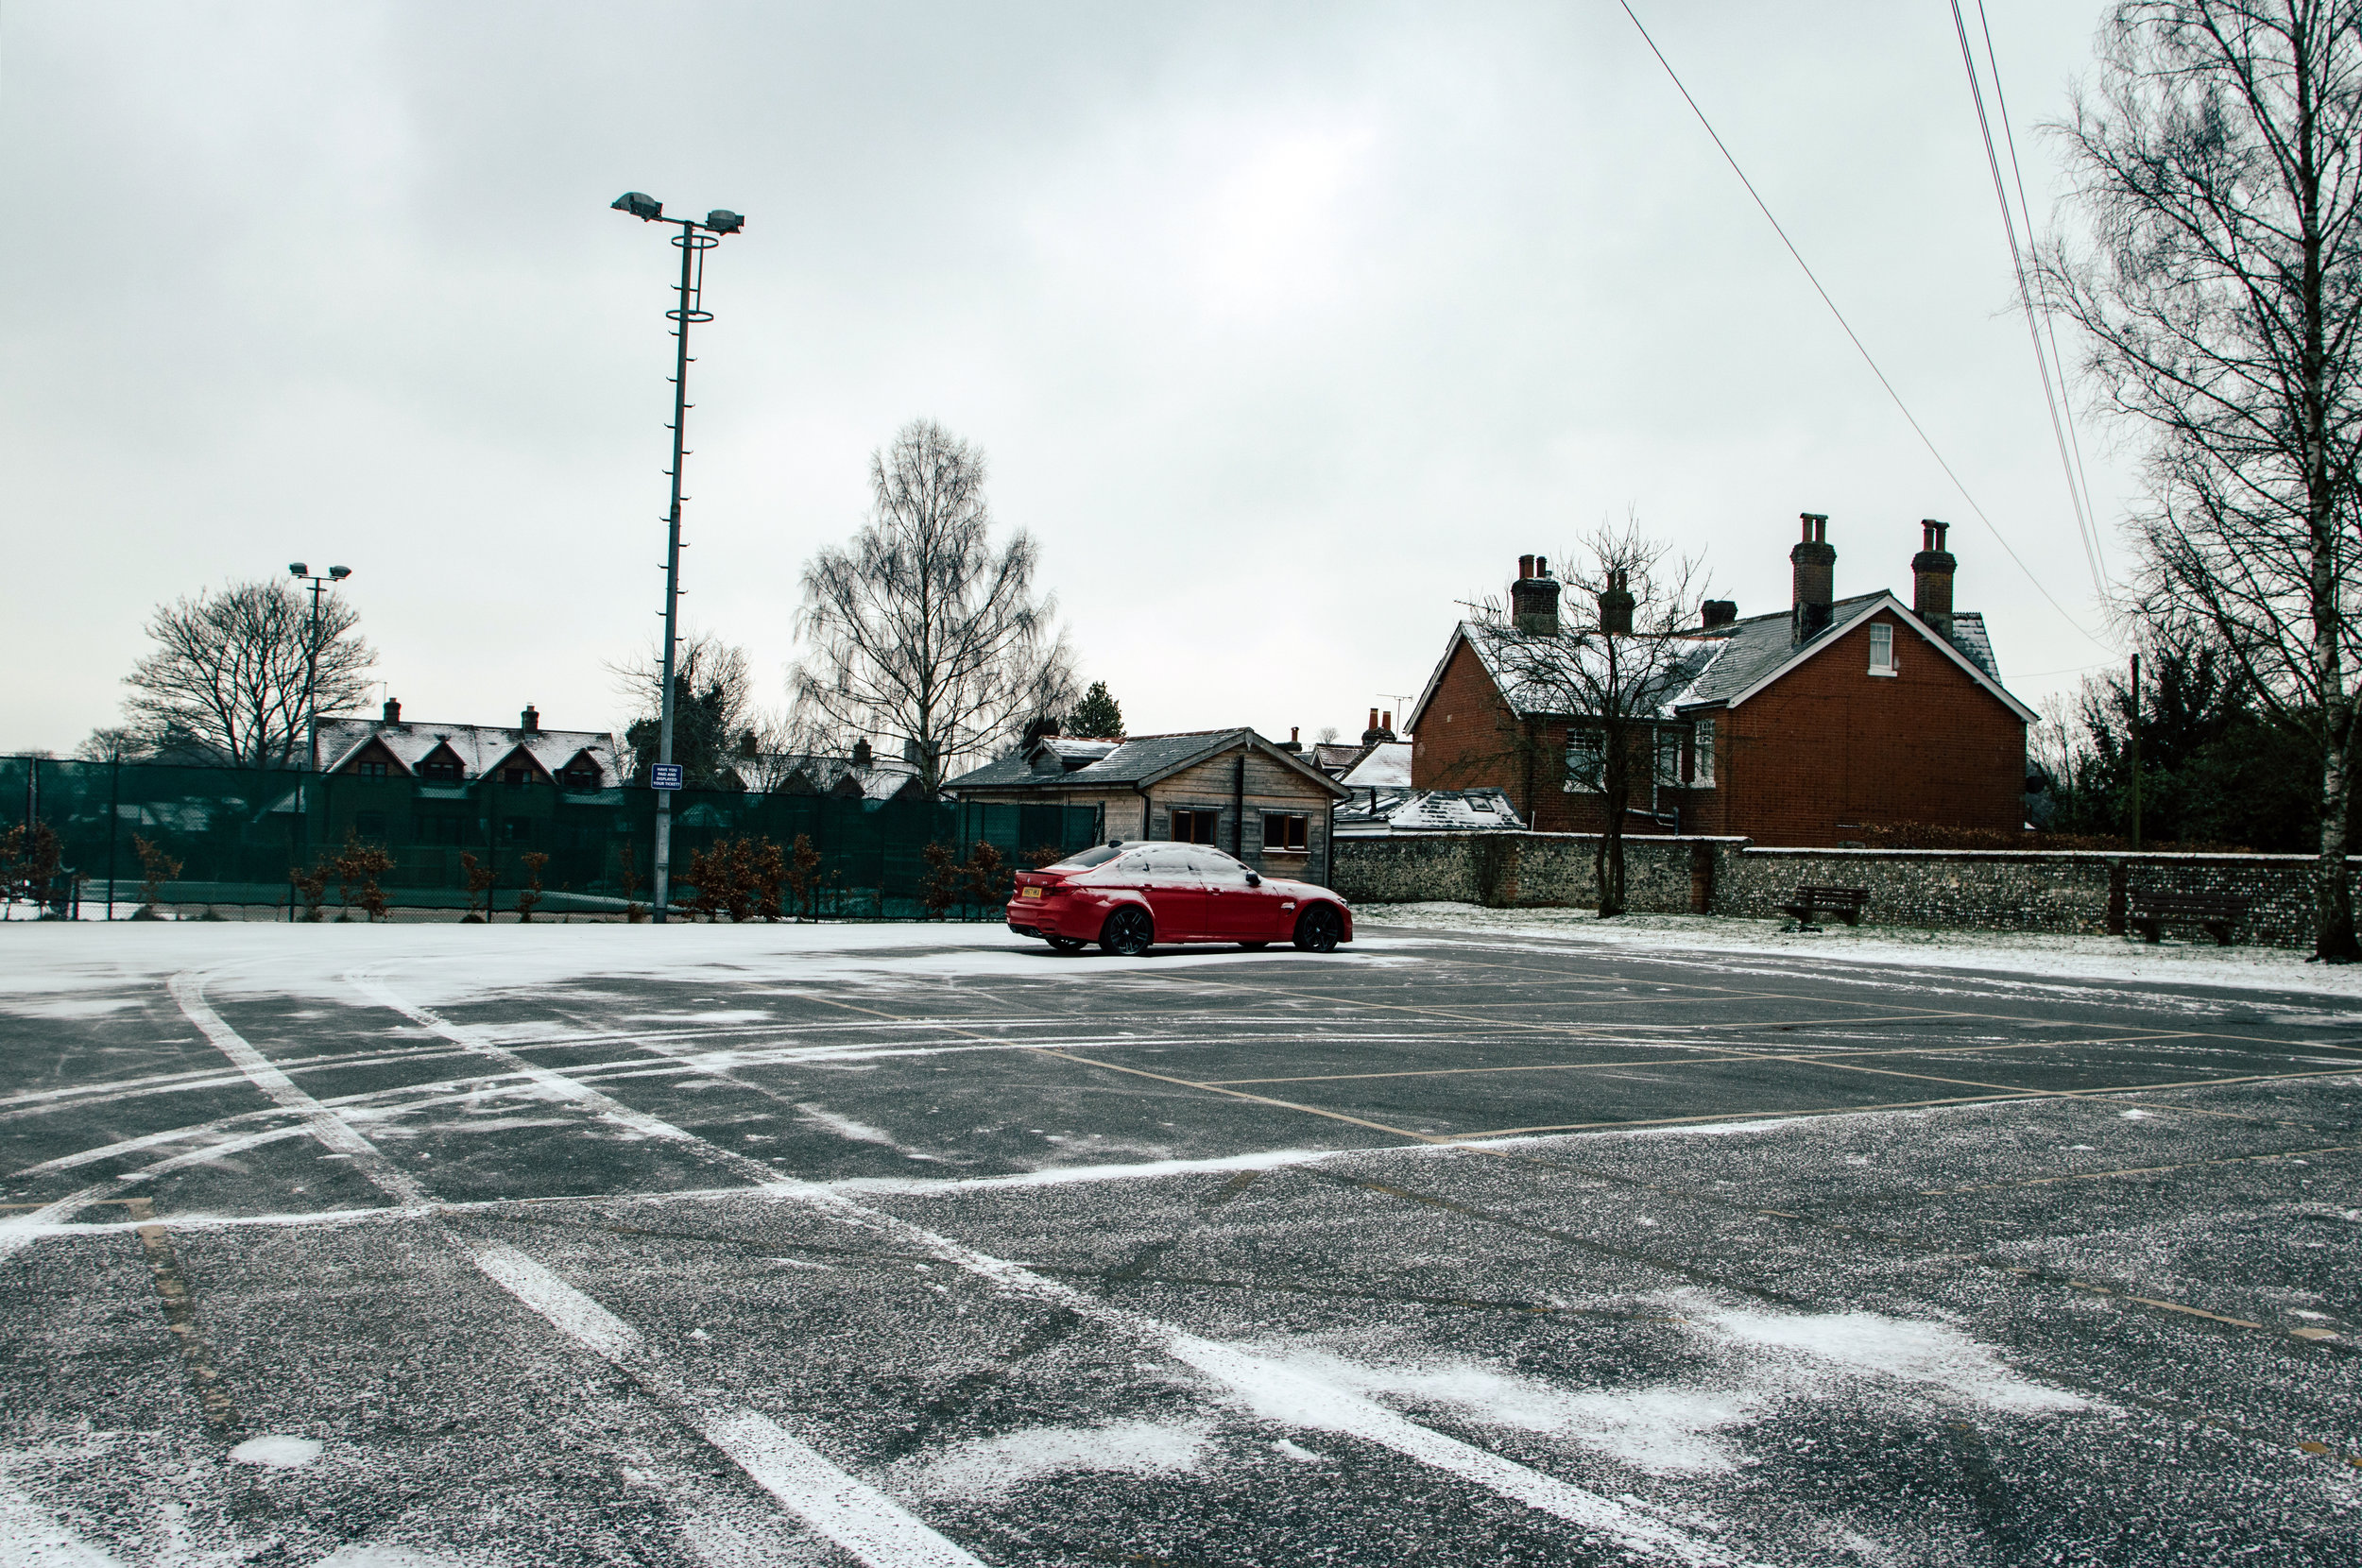 alresford snow (10 of 17).jpg